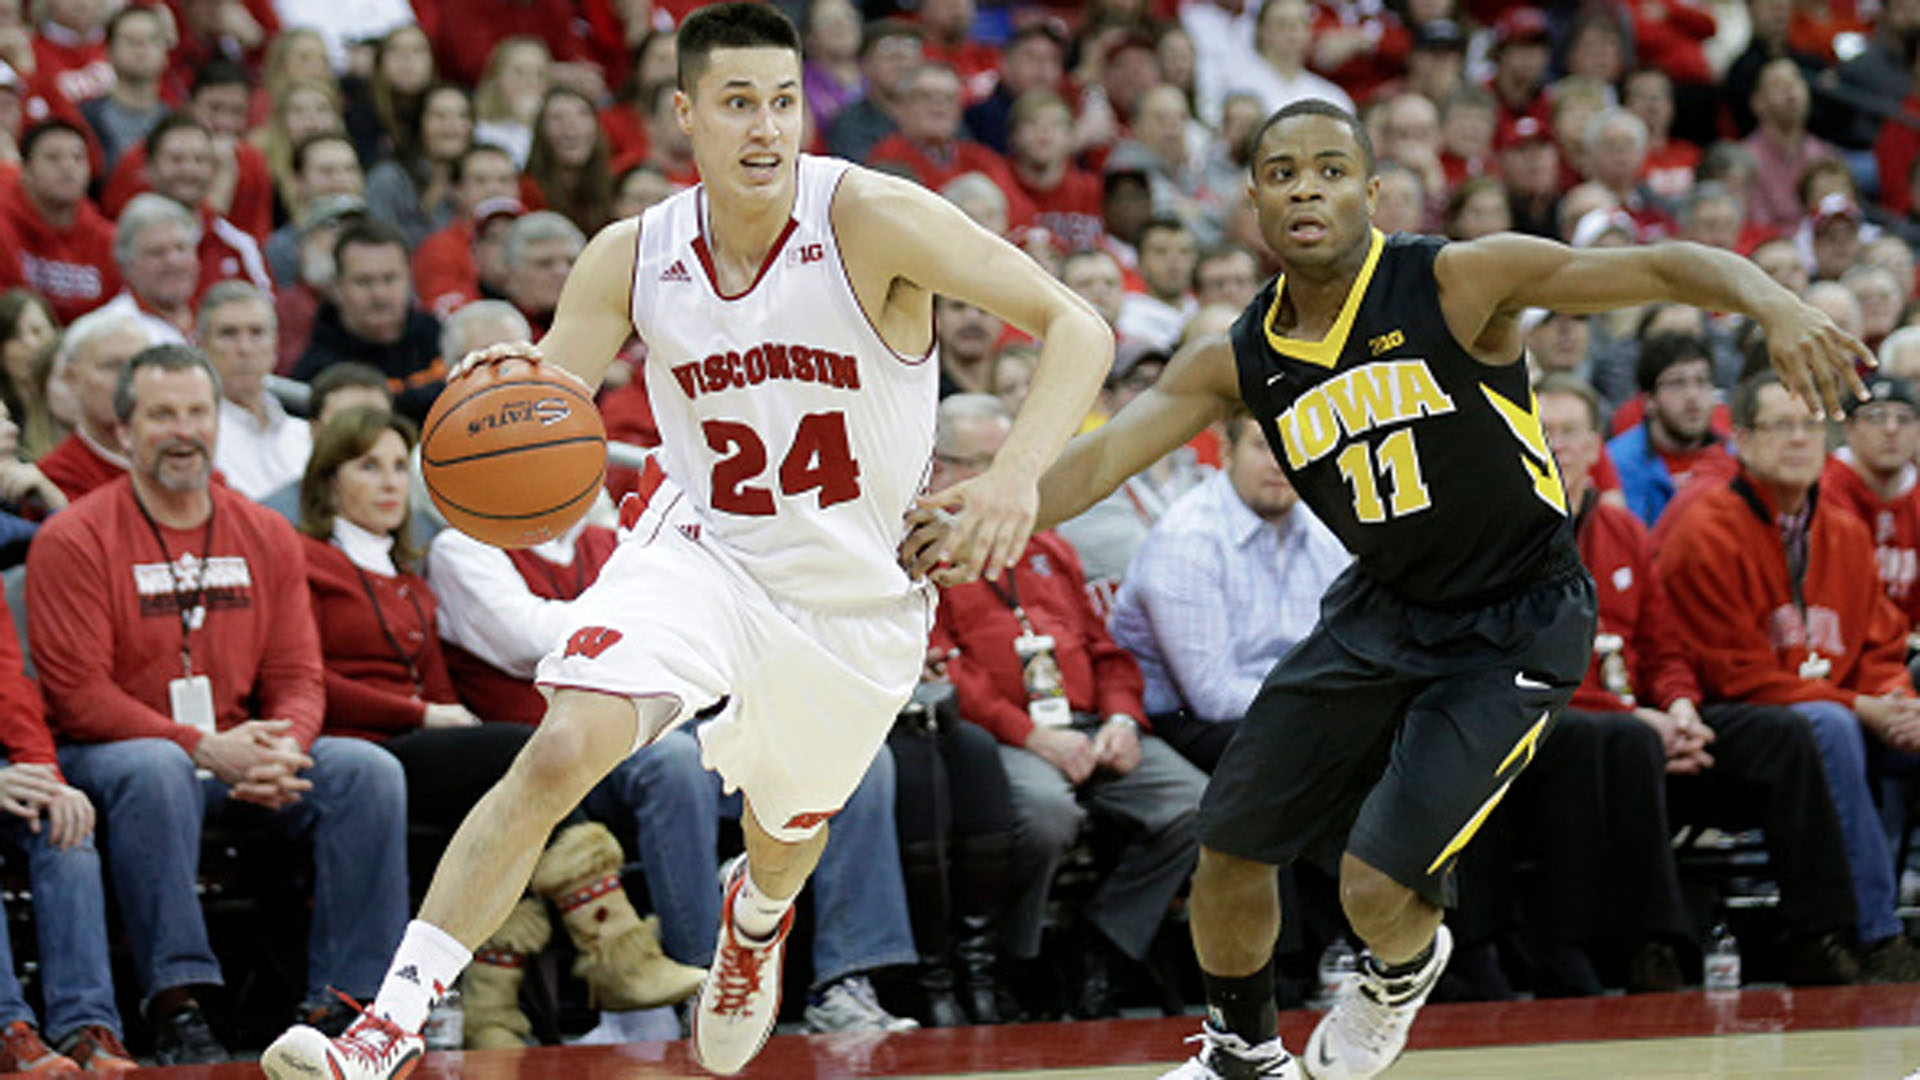 College basketball betting lines and trends – Wisconsin, Maryland meet in Big Ten battle